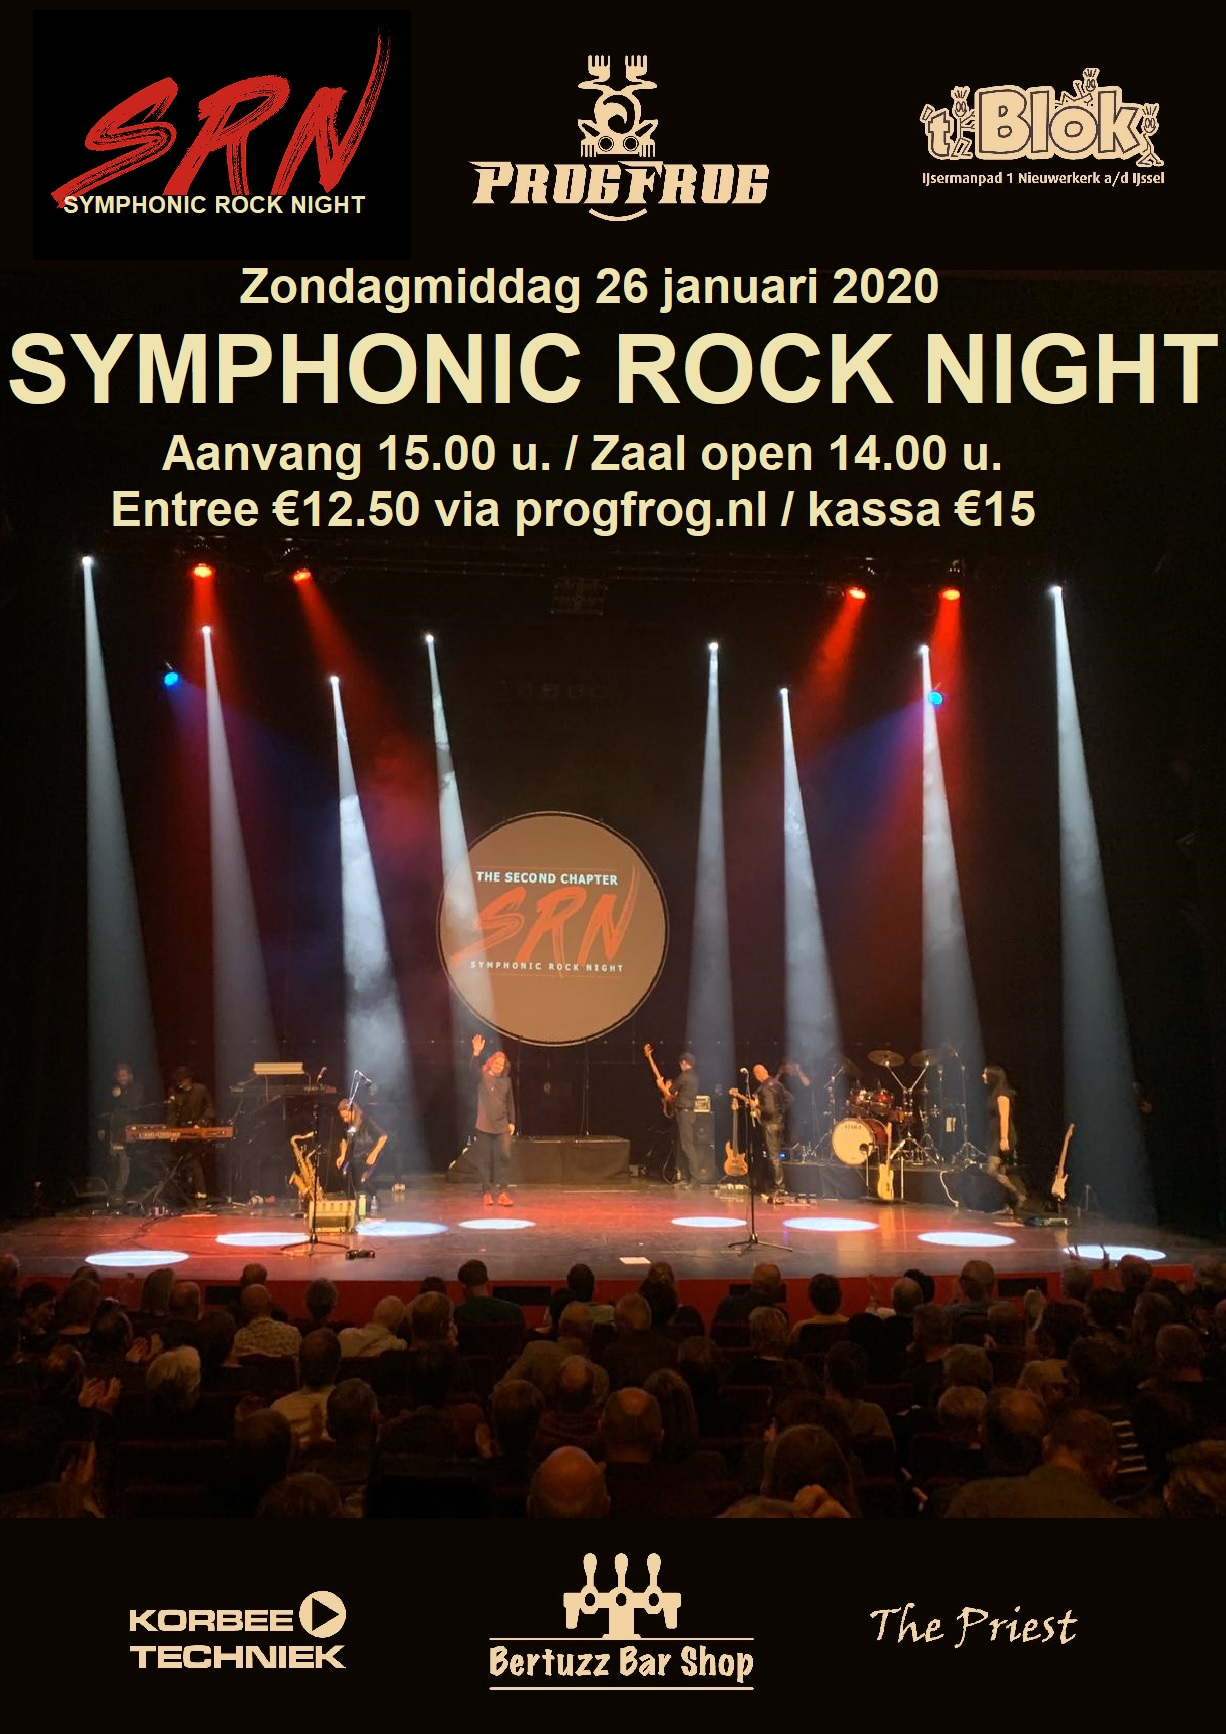 Symphonic Rock Night (in the afternoon)